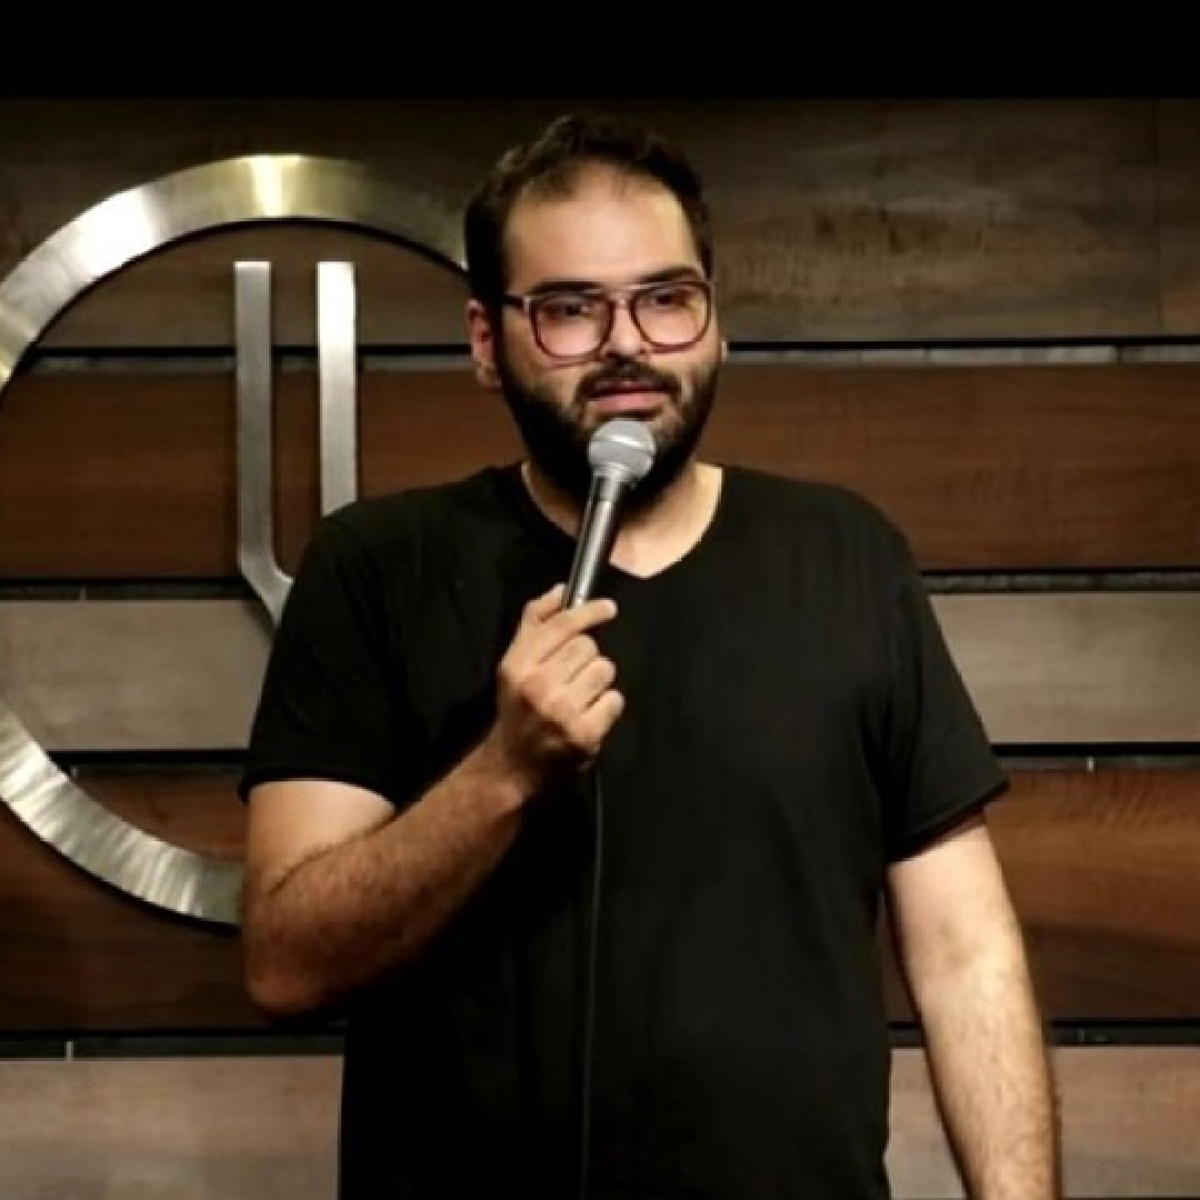 After IndiGo, Air India, now SpiceJet suspends Kunal Kamra from flying 'until further notice'